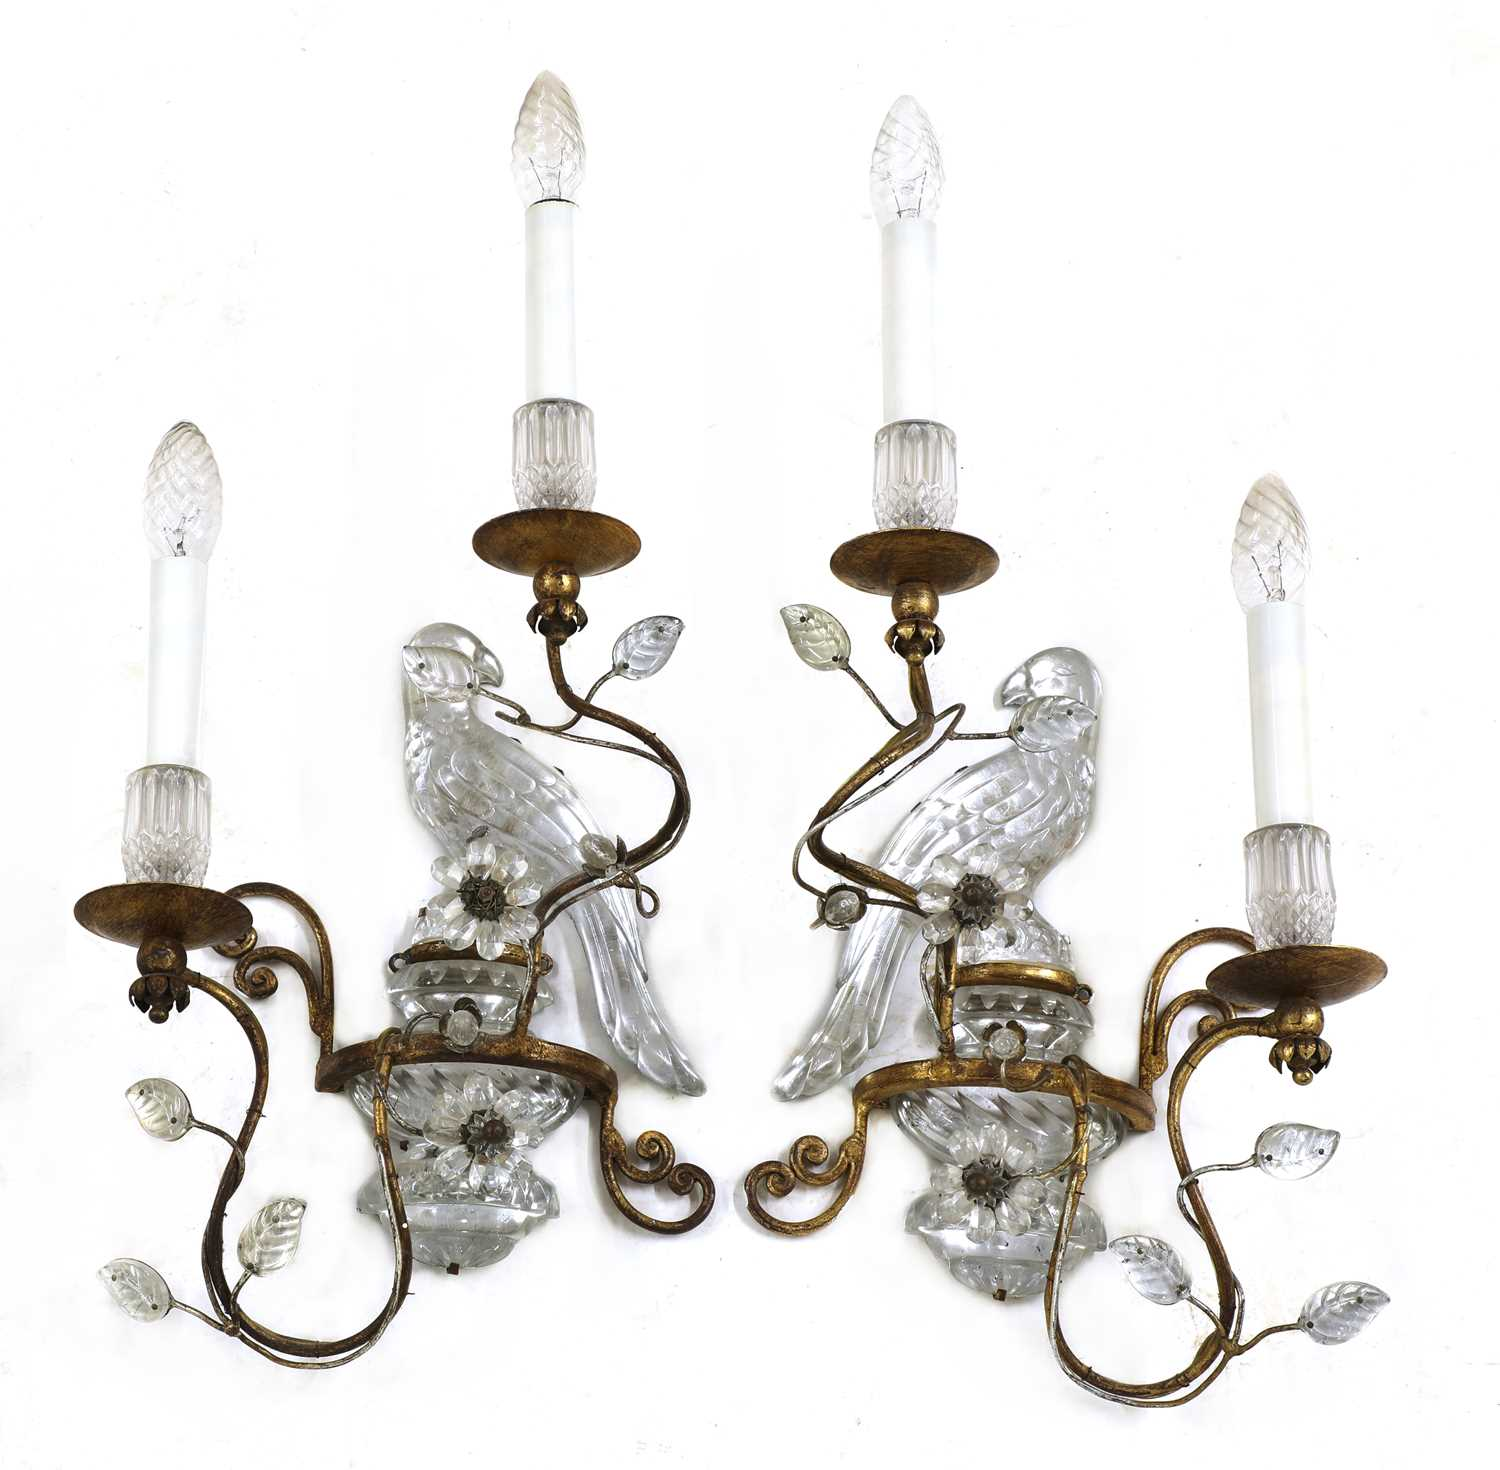 Lot 226 - A pair of French glass and gilt metal 'parrot' wall sconces